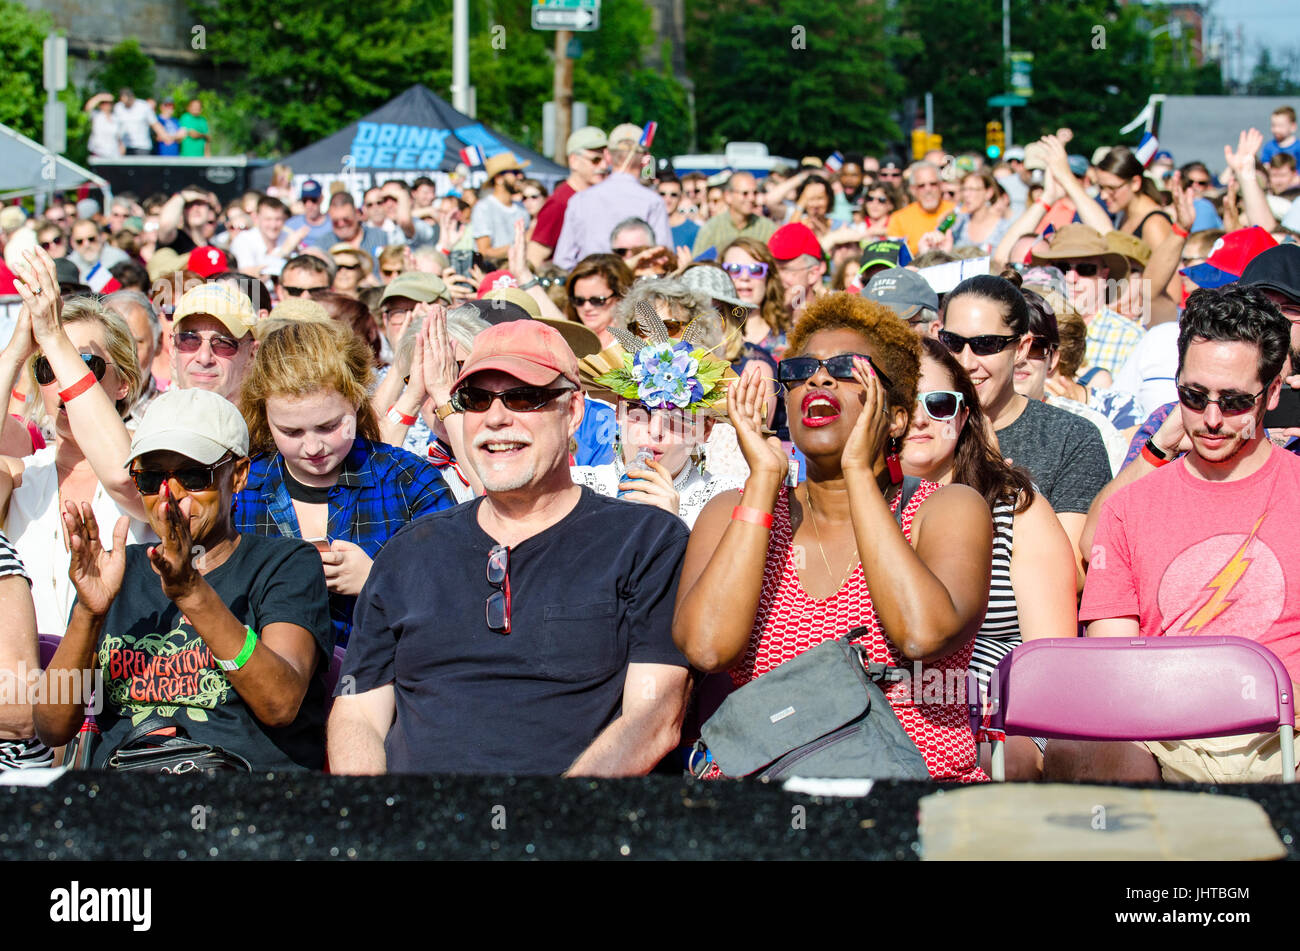 Philadelphia, USA. 15th July, 2017. The crowd cheer on the Bearded Ladies' performance. Credit: Christopher - Stock Image